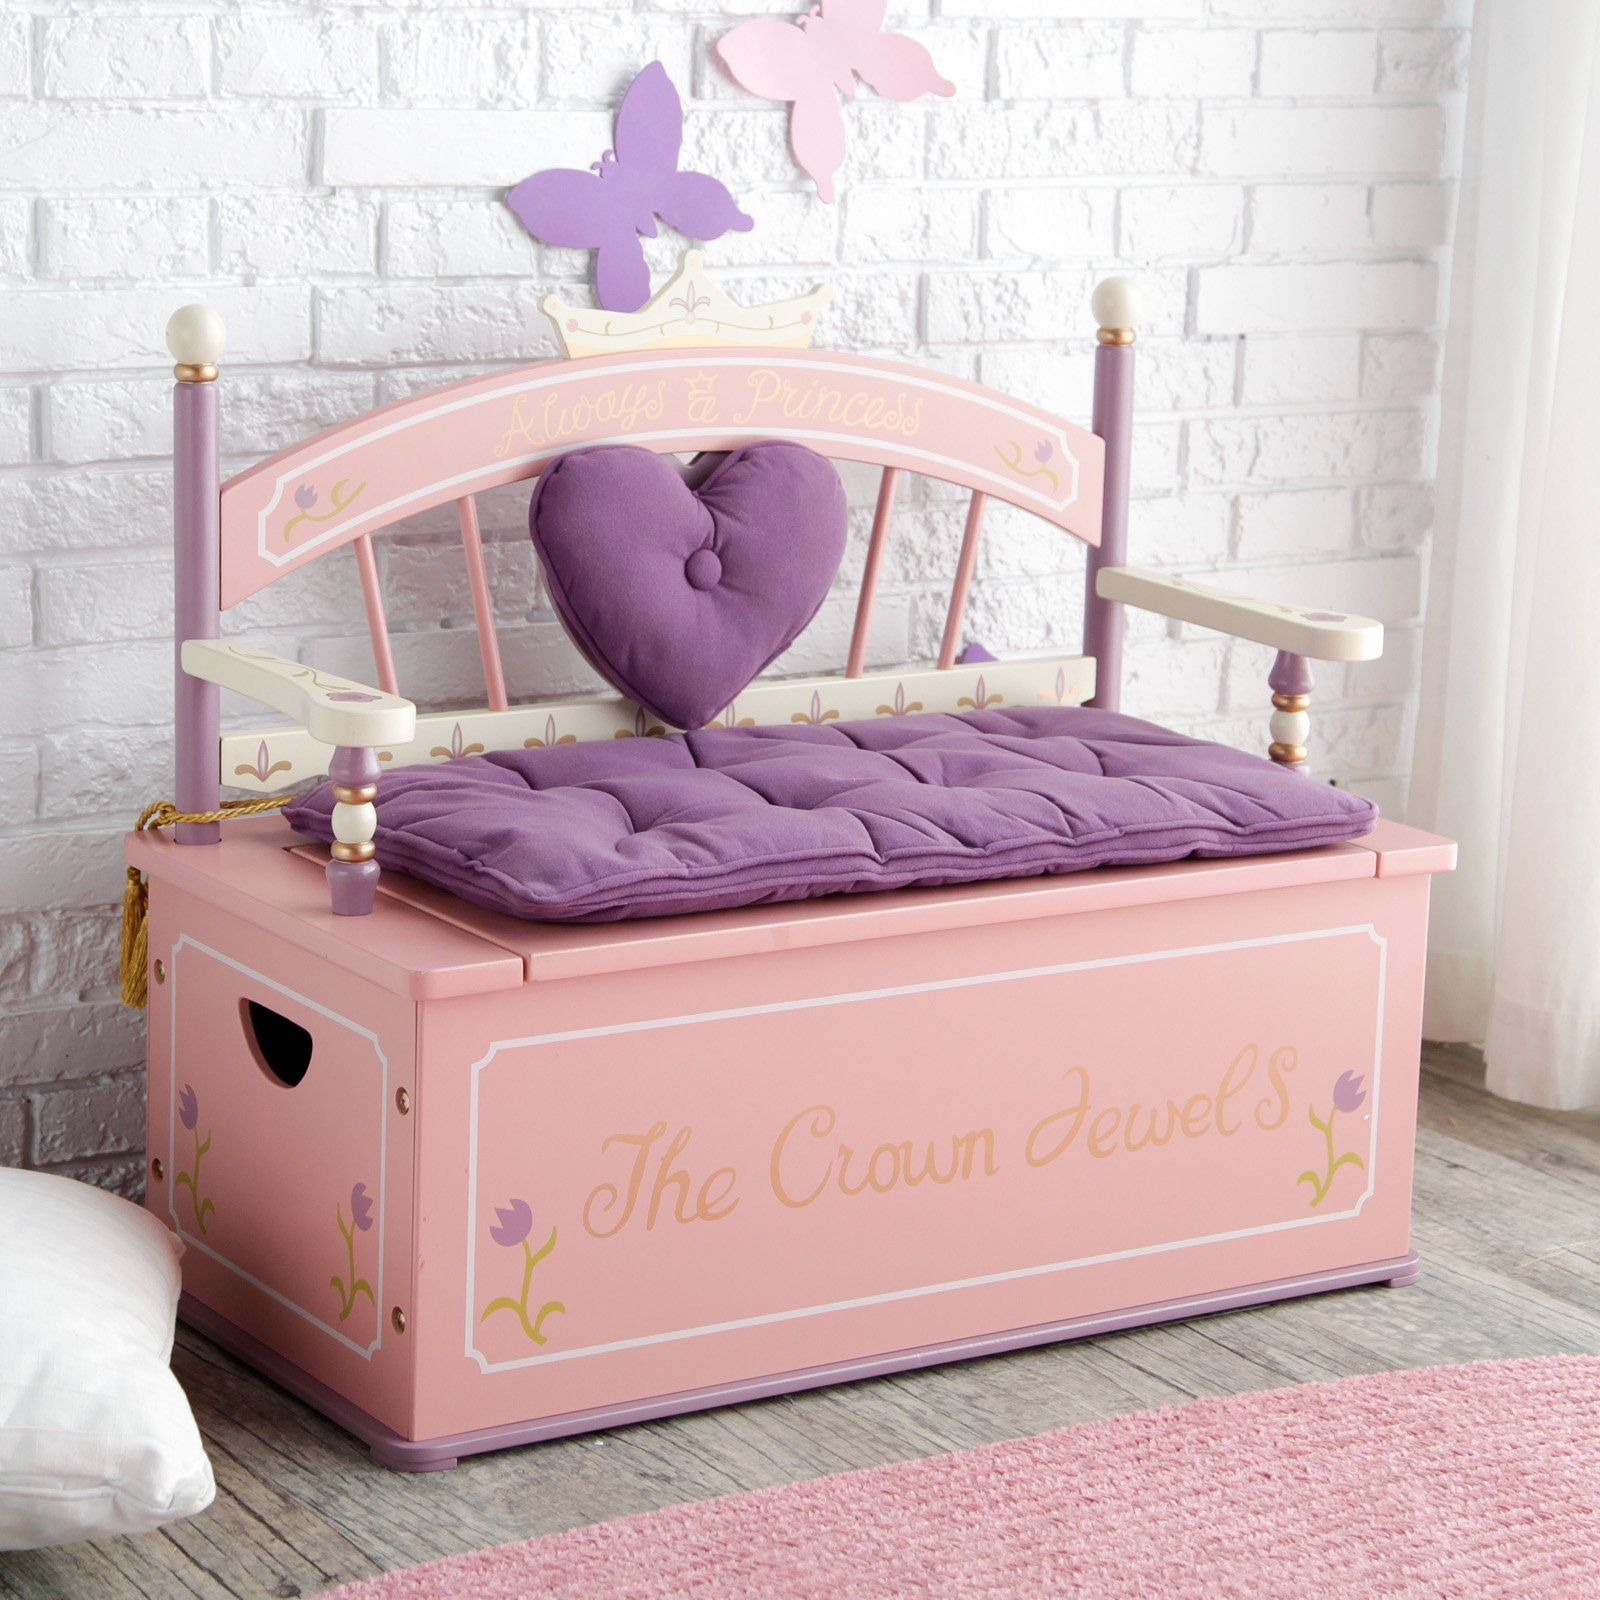 Levels Of Discovery Royal Princess Toy Box Bench Kid Toy Storage